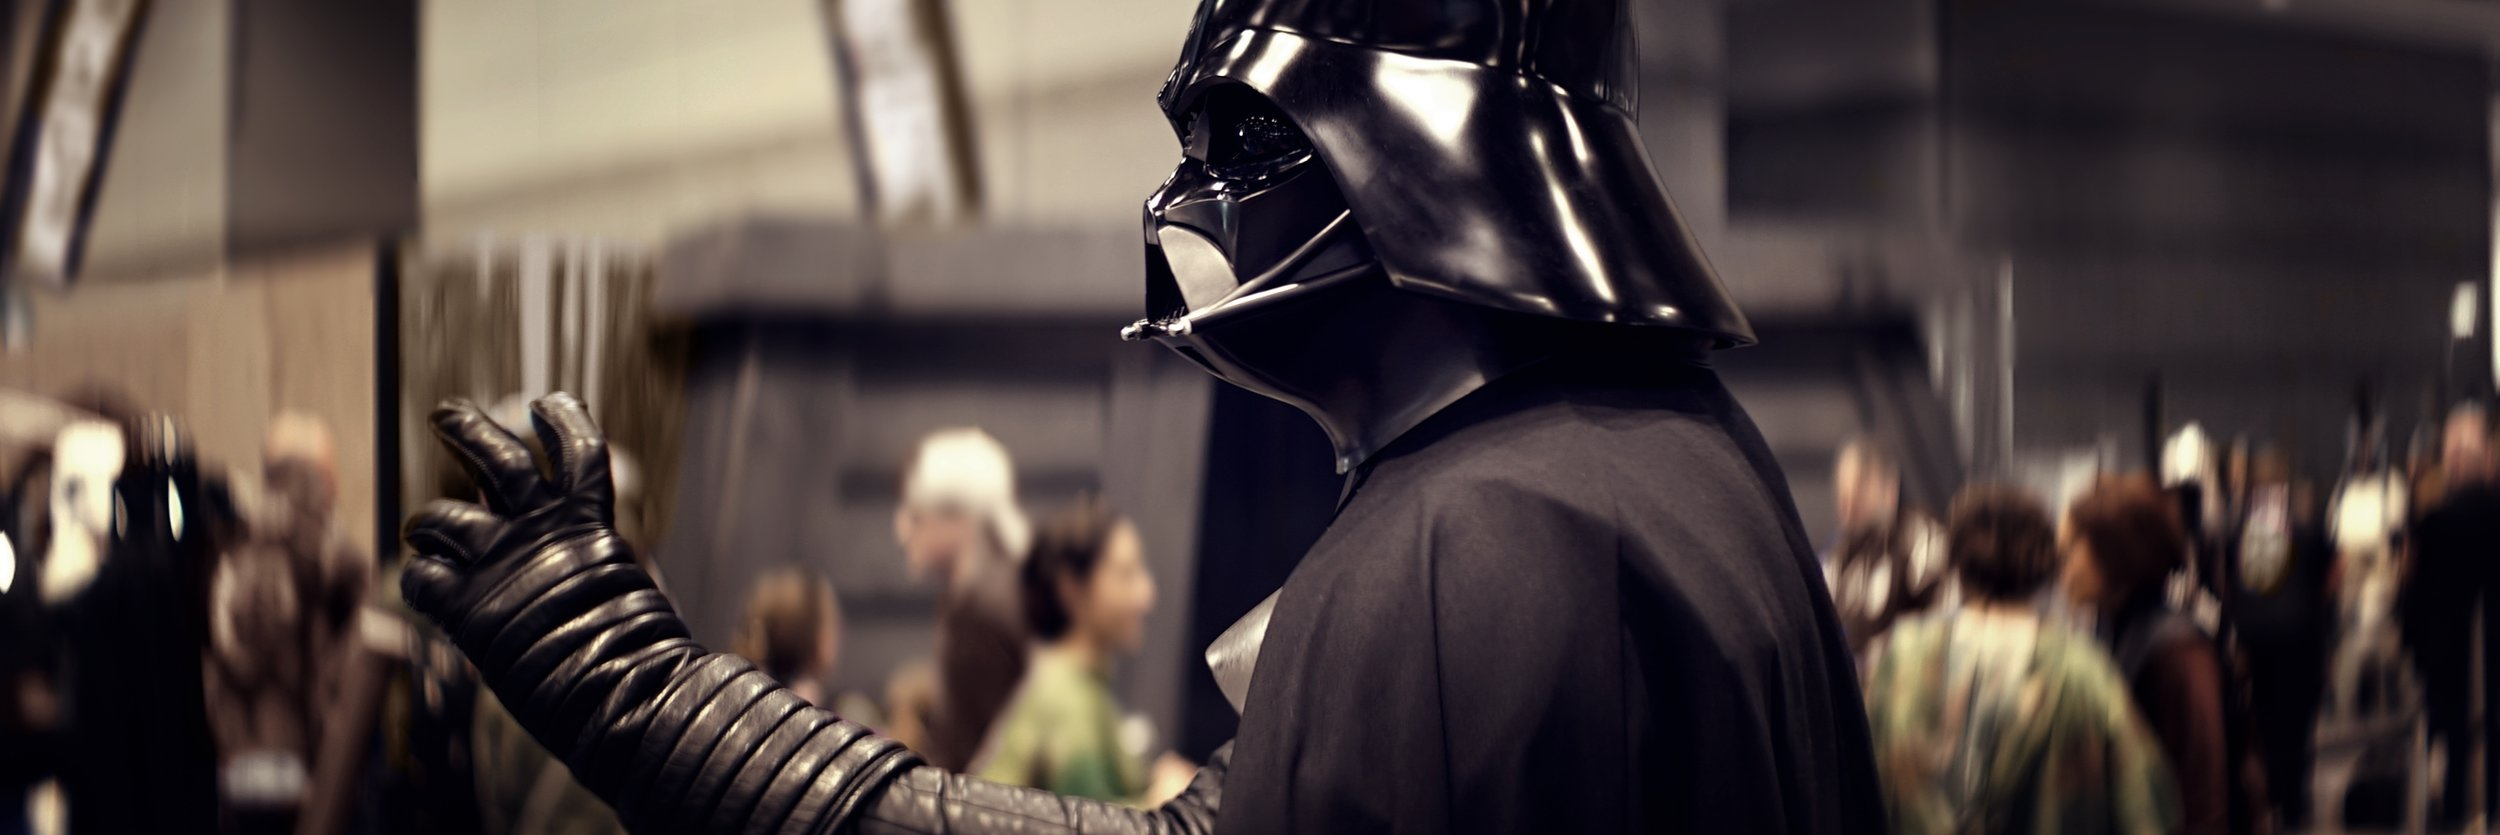 Lomo 75mm Anamorphic Lens | Star Wars Celebration Chicago - SWCC | Darth Vader clearly choking someone across the room. - Photo by: Keith Nickoson